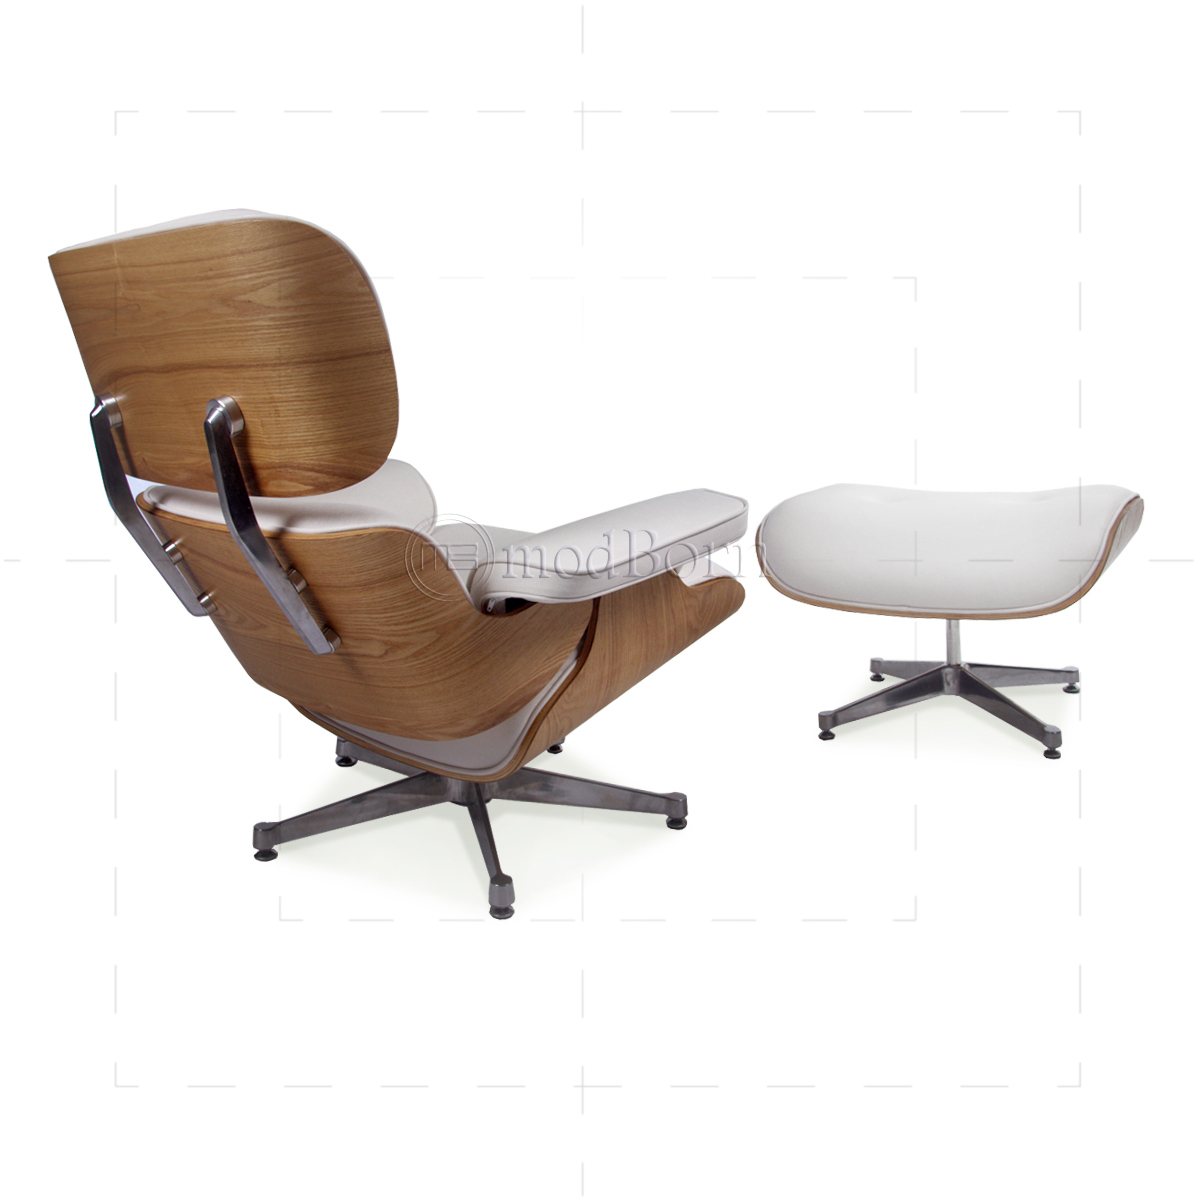 white eames lounge chair replica bean bag adults style and ottoman leather ash plywood taller version